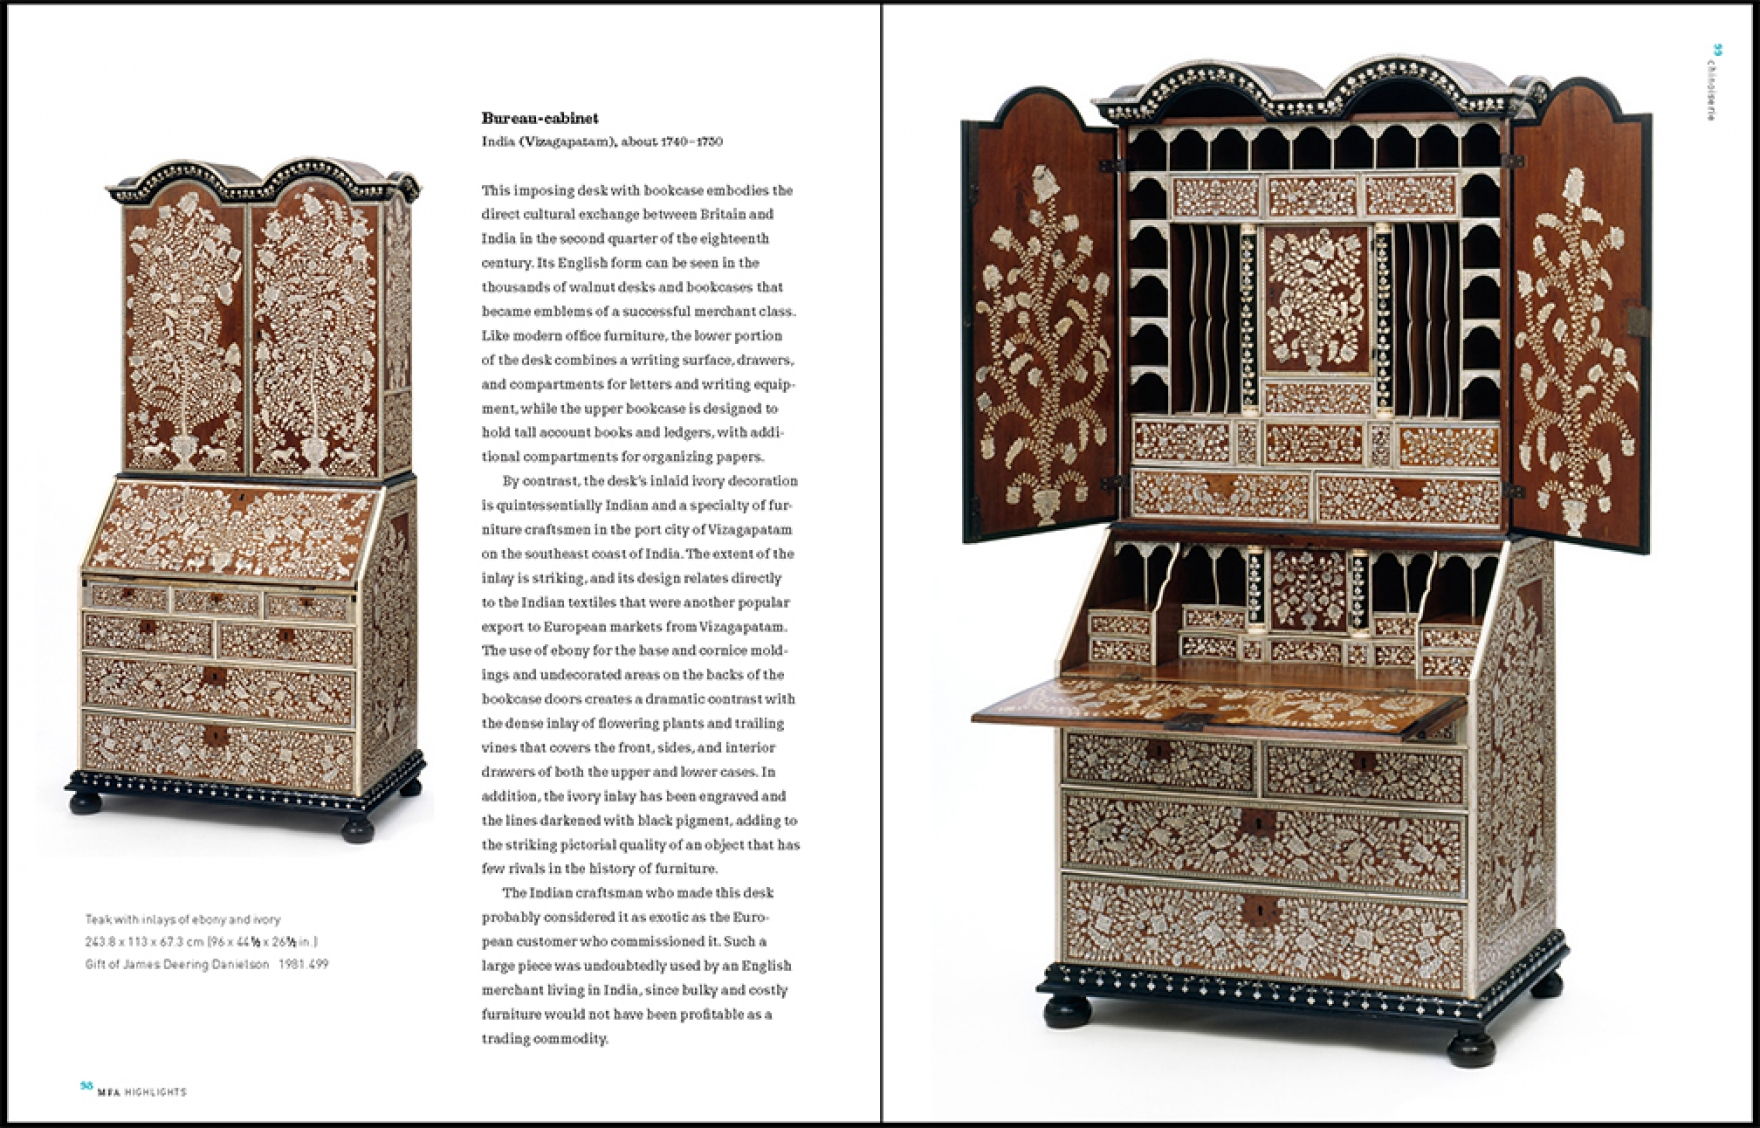 European Decorative Arts sample spread 2